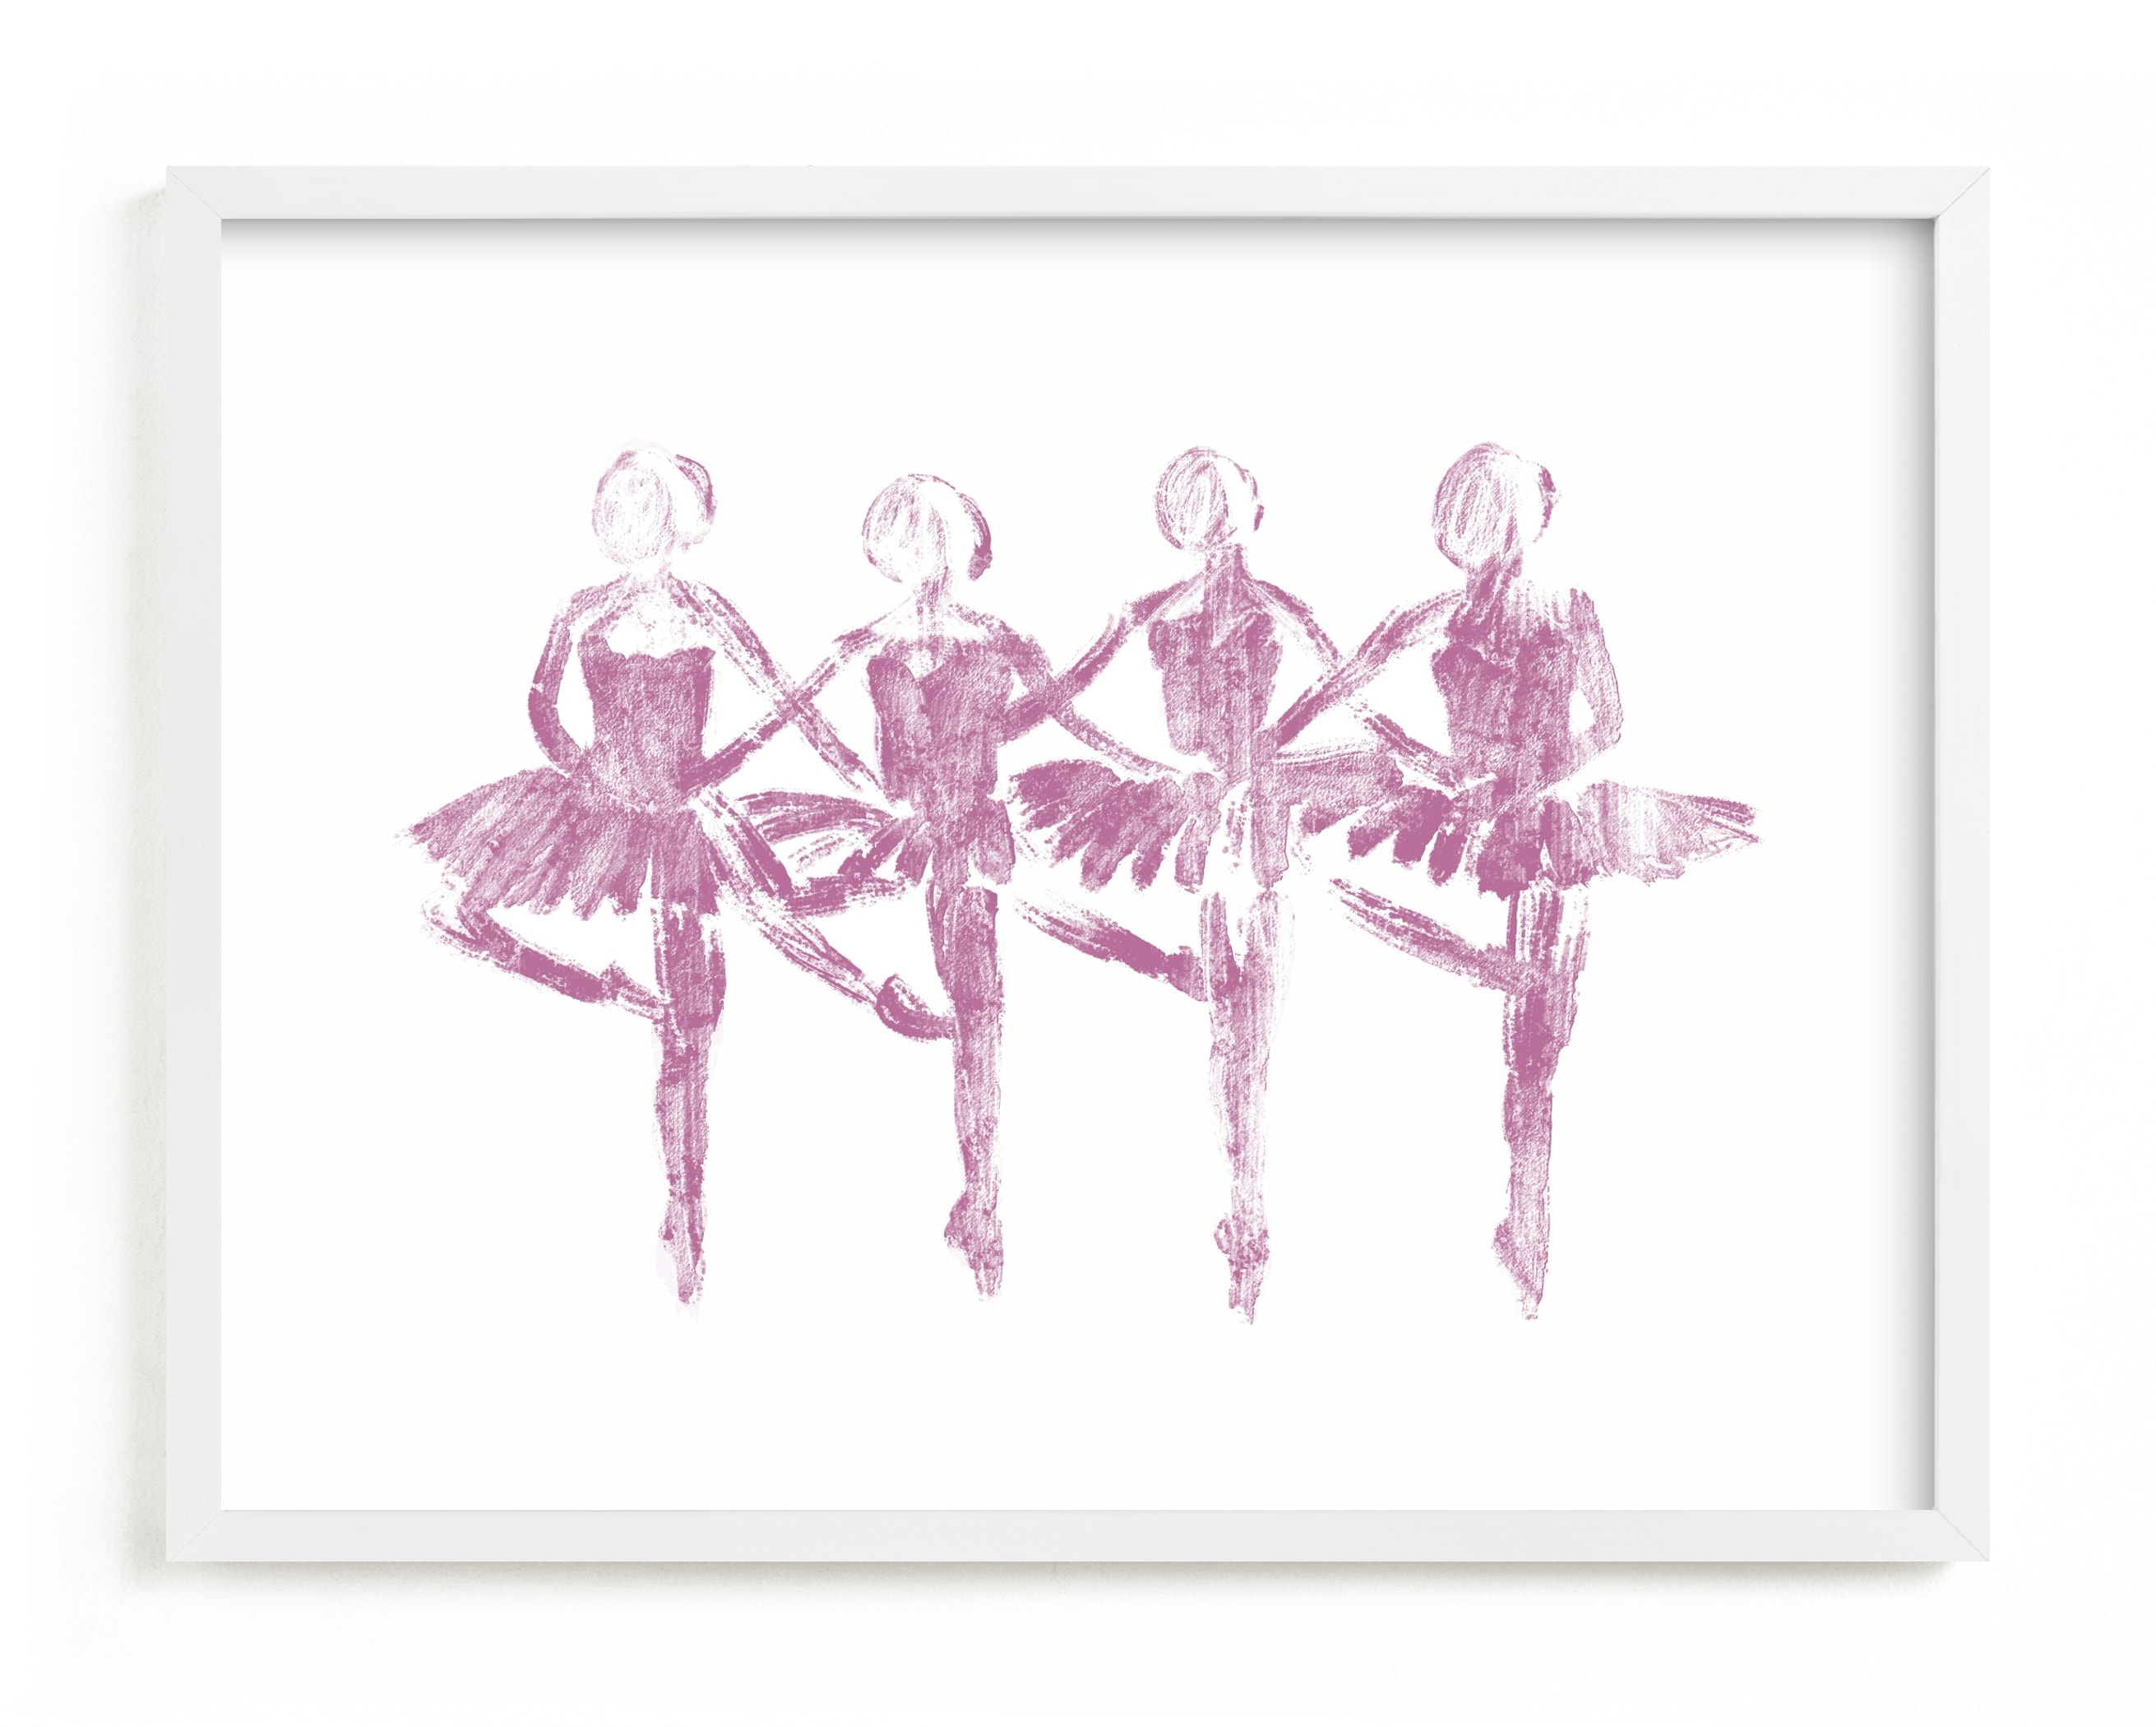 This is a purple kids wall art by Leanne Friedberg called Les Cygnets.